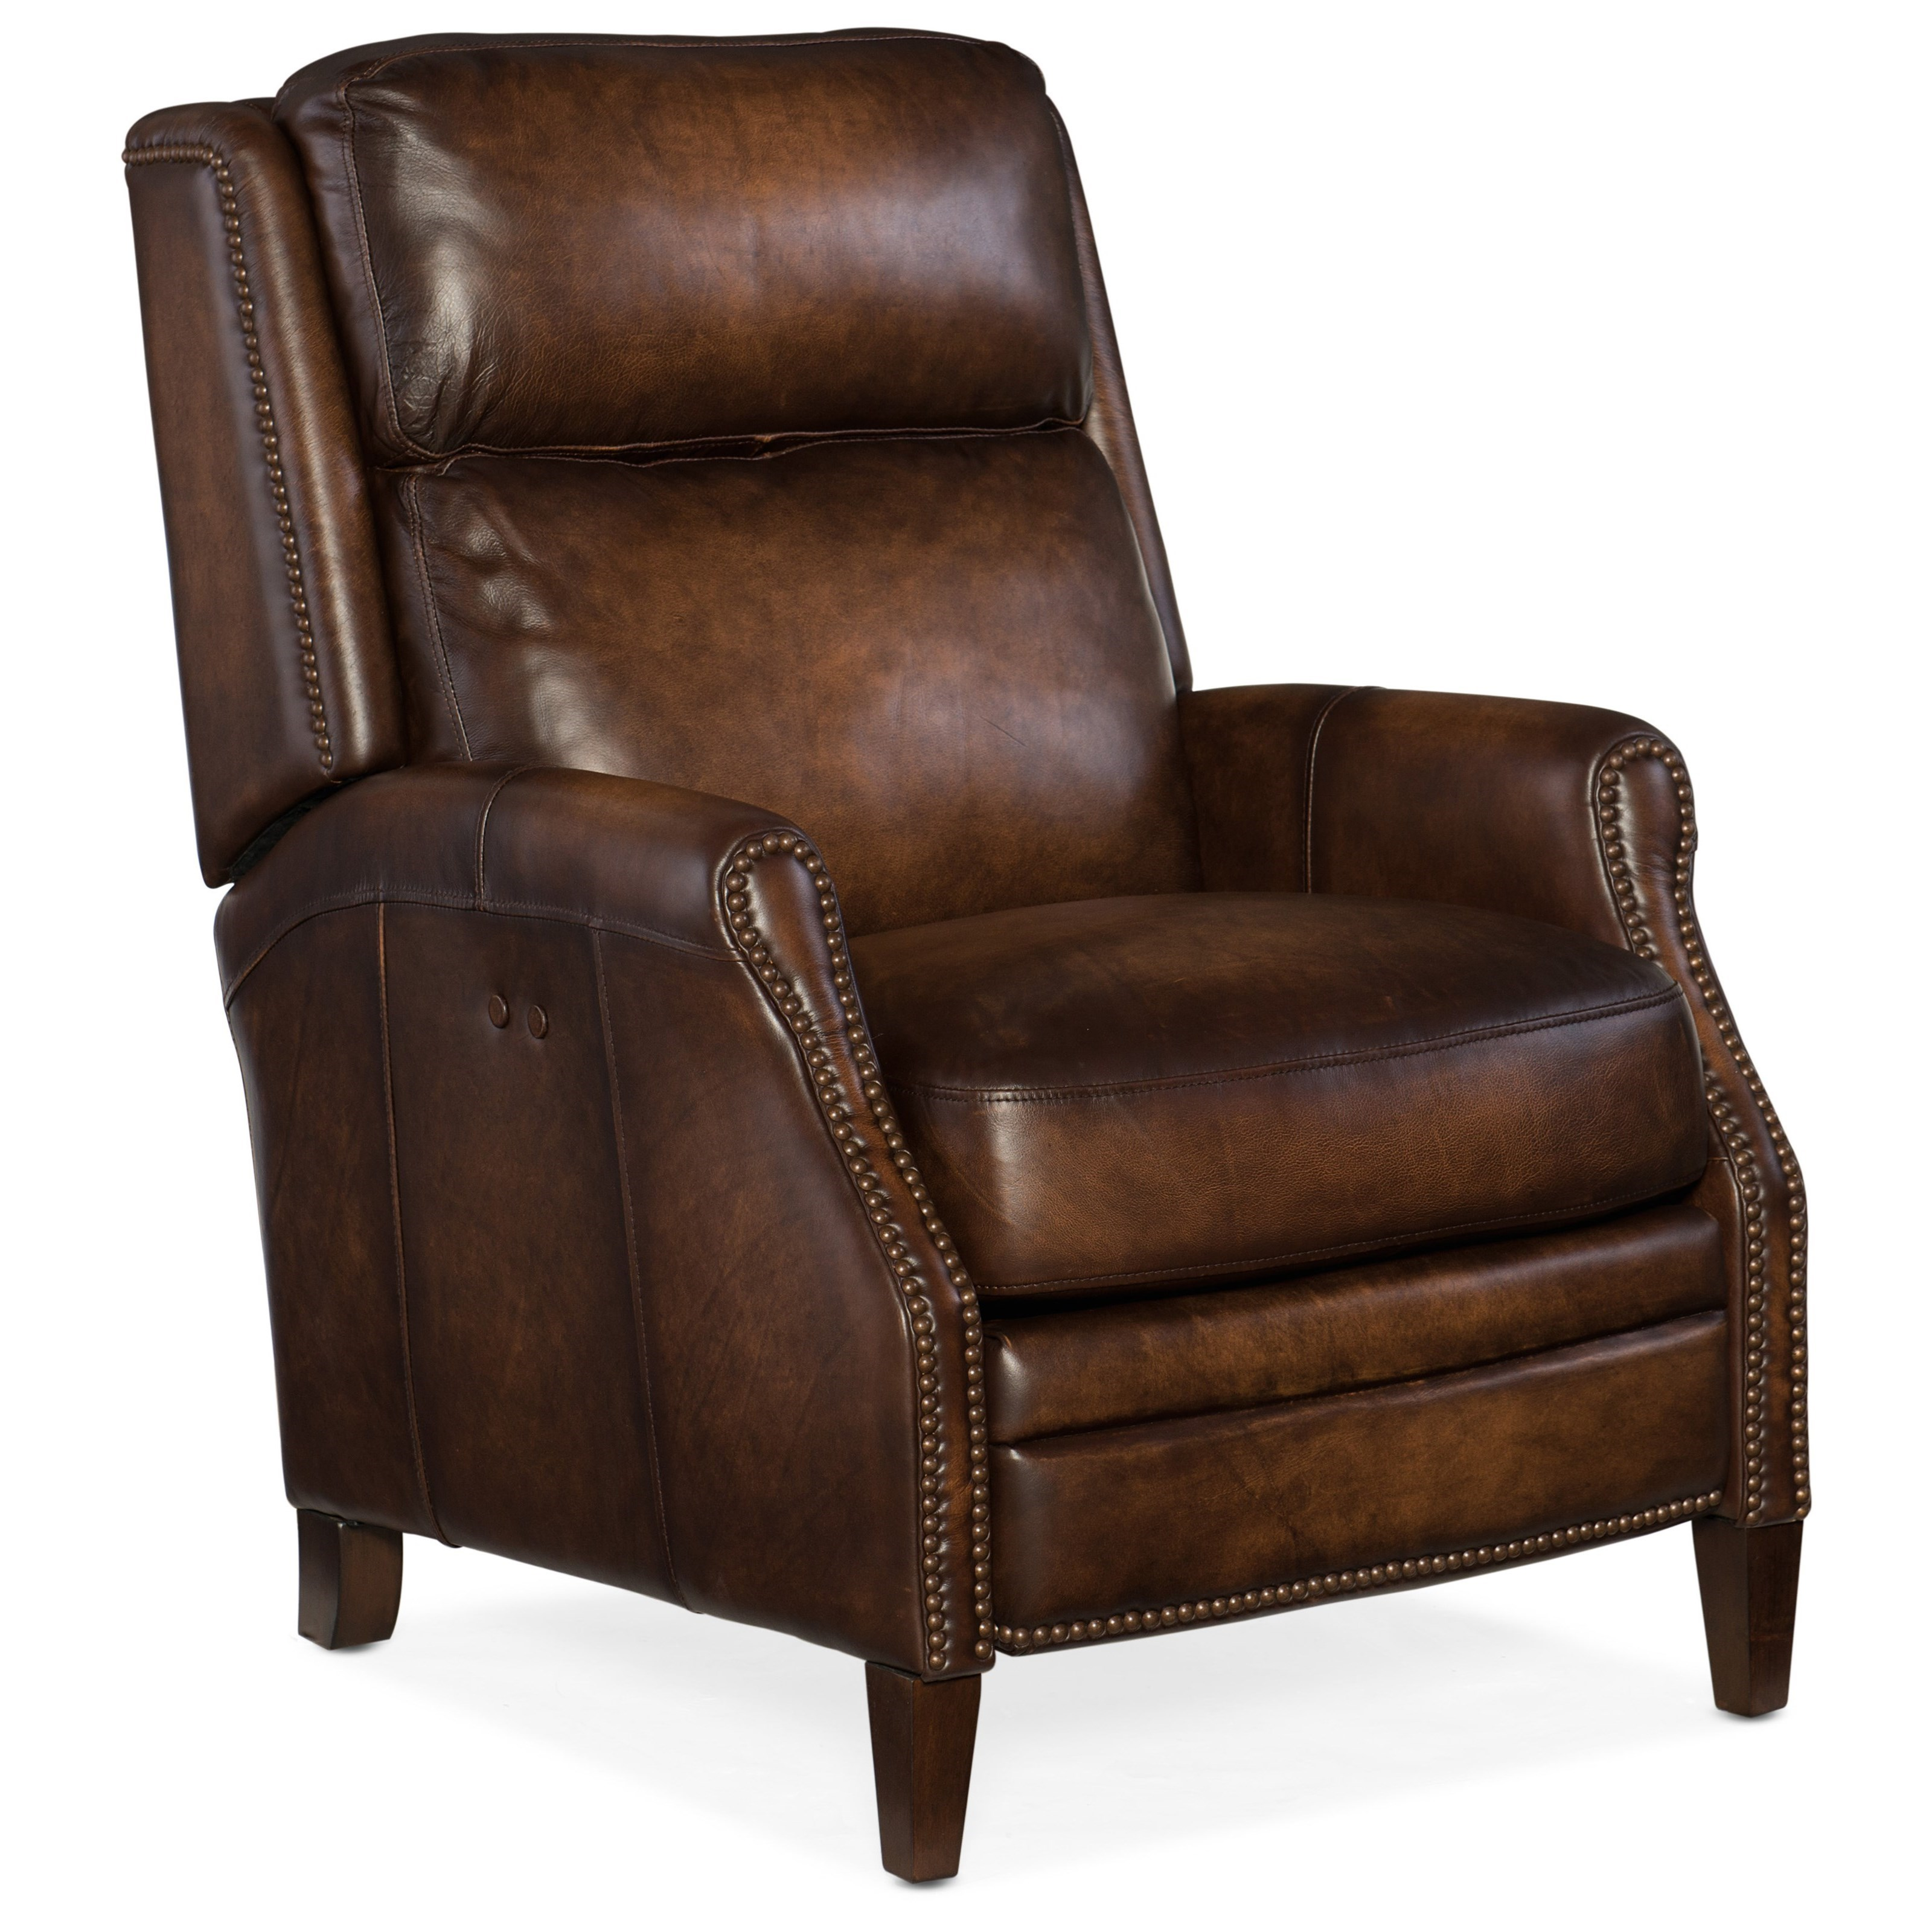 Leather Reclining Chairs Reclining Chairs Zephyr Power Recliner With Nailhead Trim By Hooker Furniture At Dunk Bright Furniture